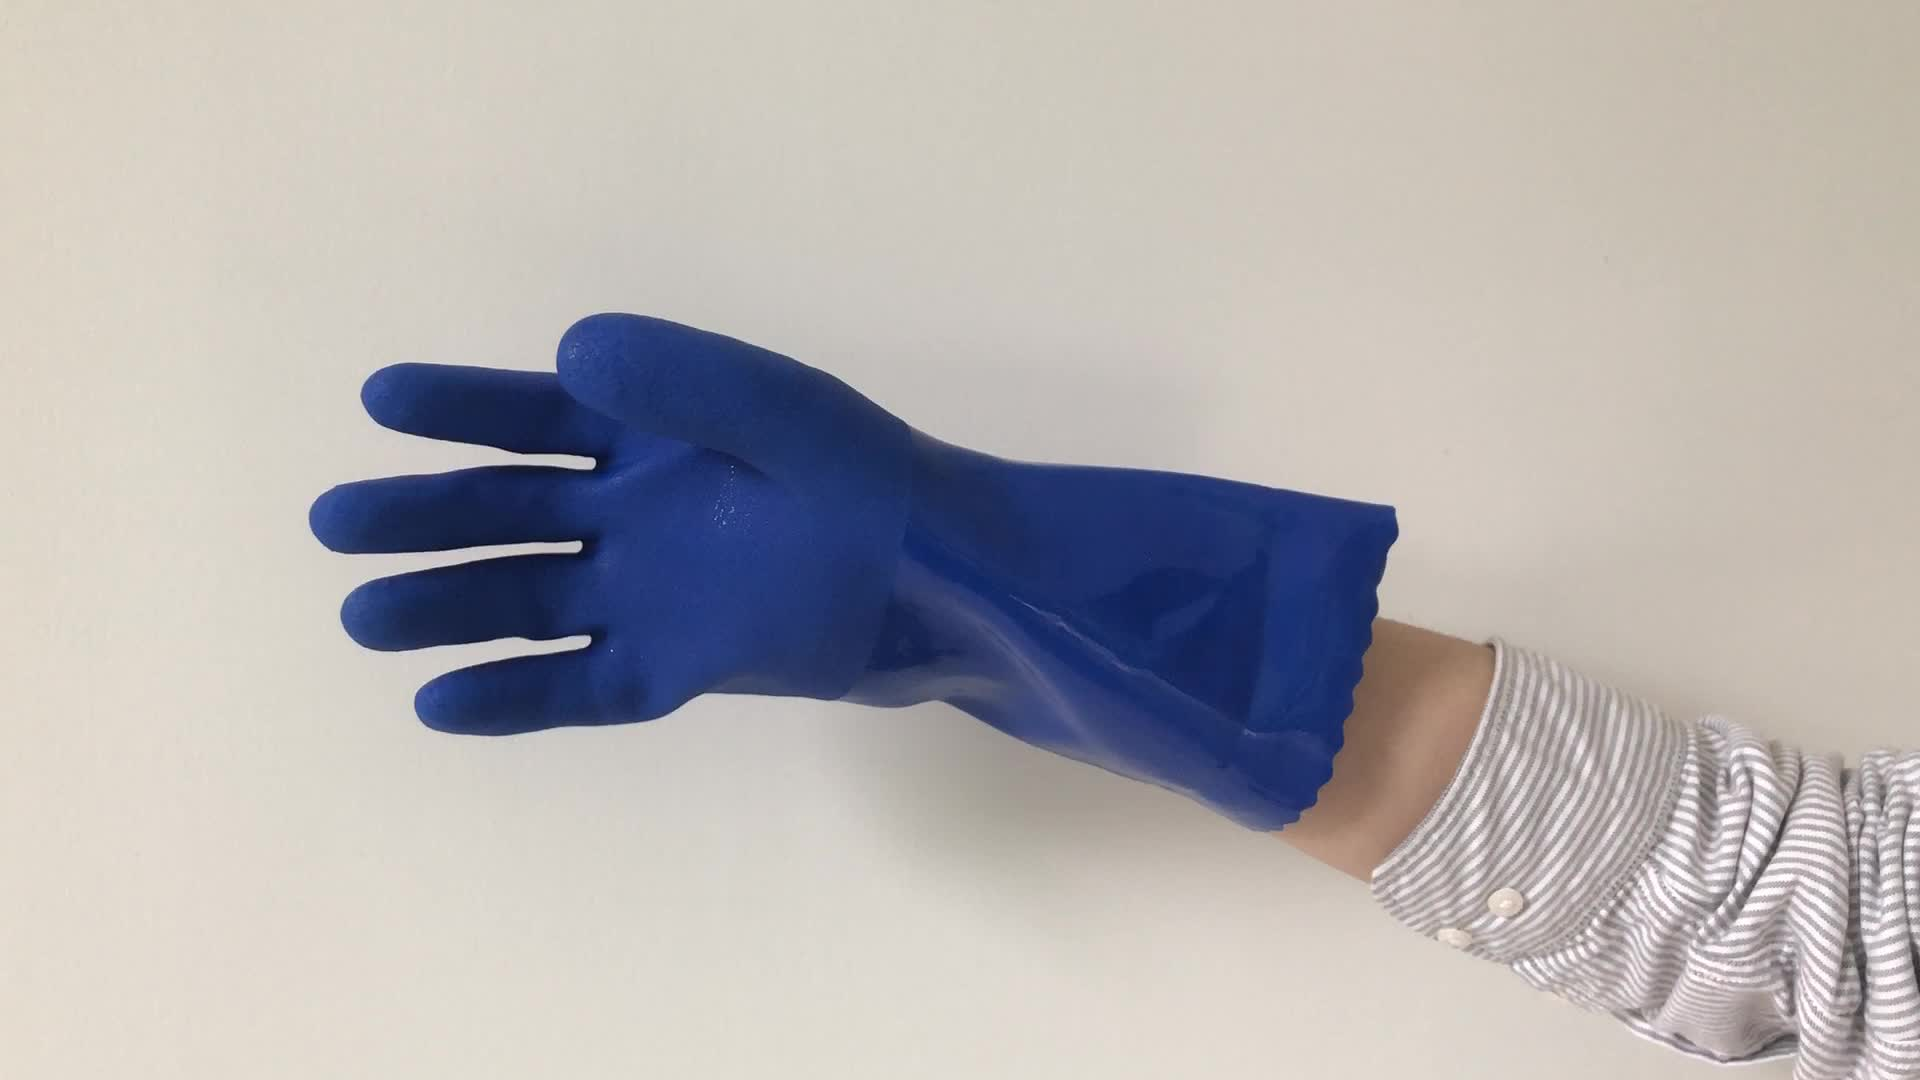 HTR PVC triple dipped hand protection oil gas chemical resistant Glove